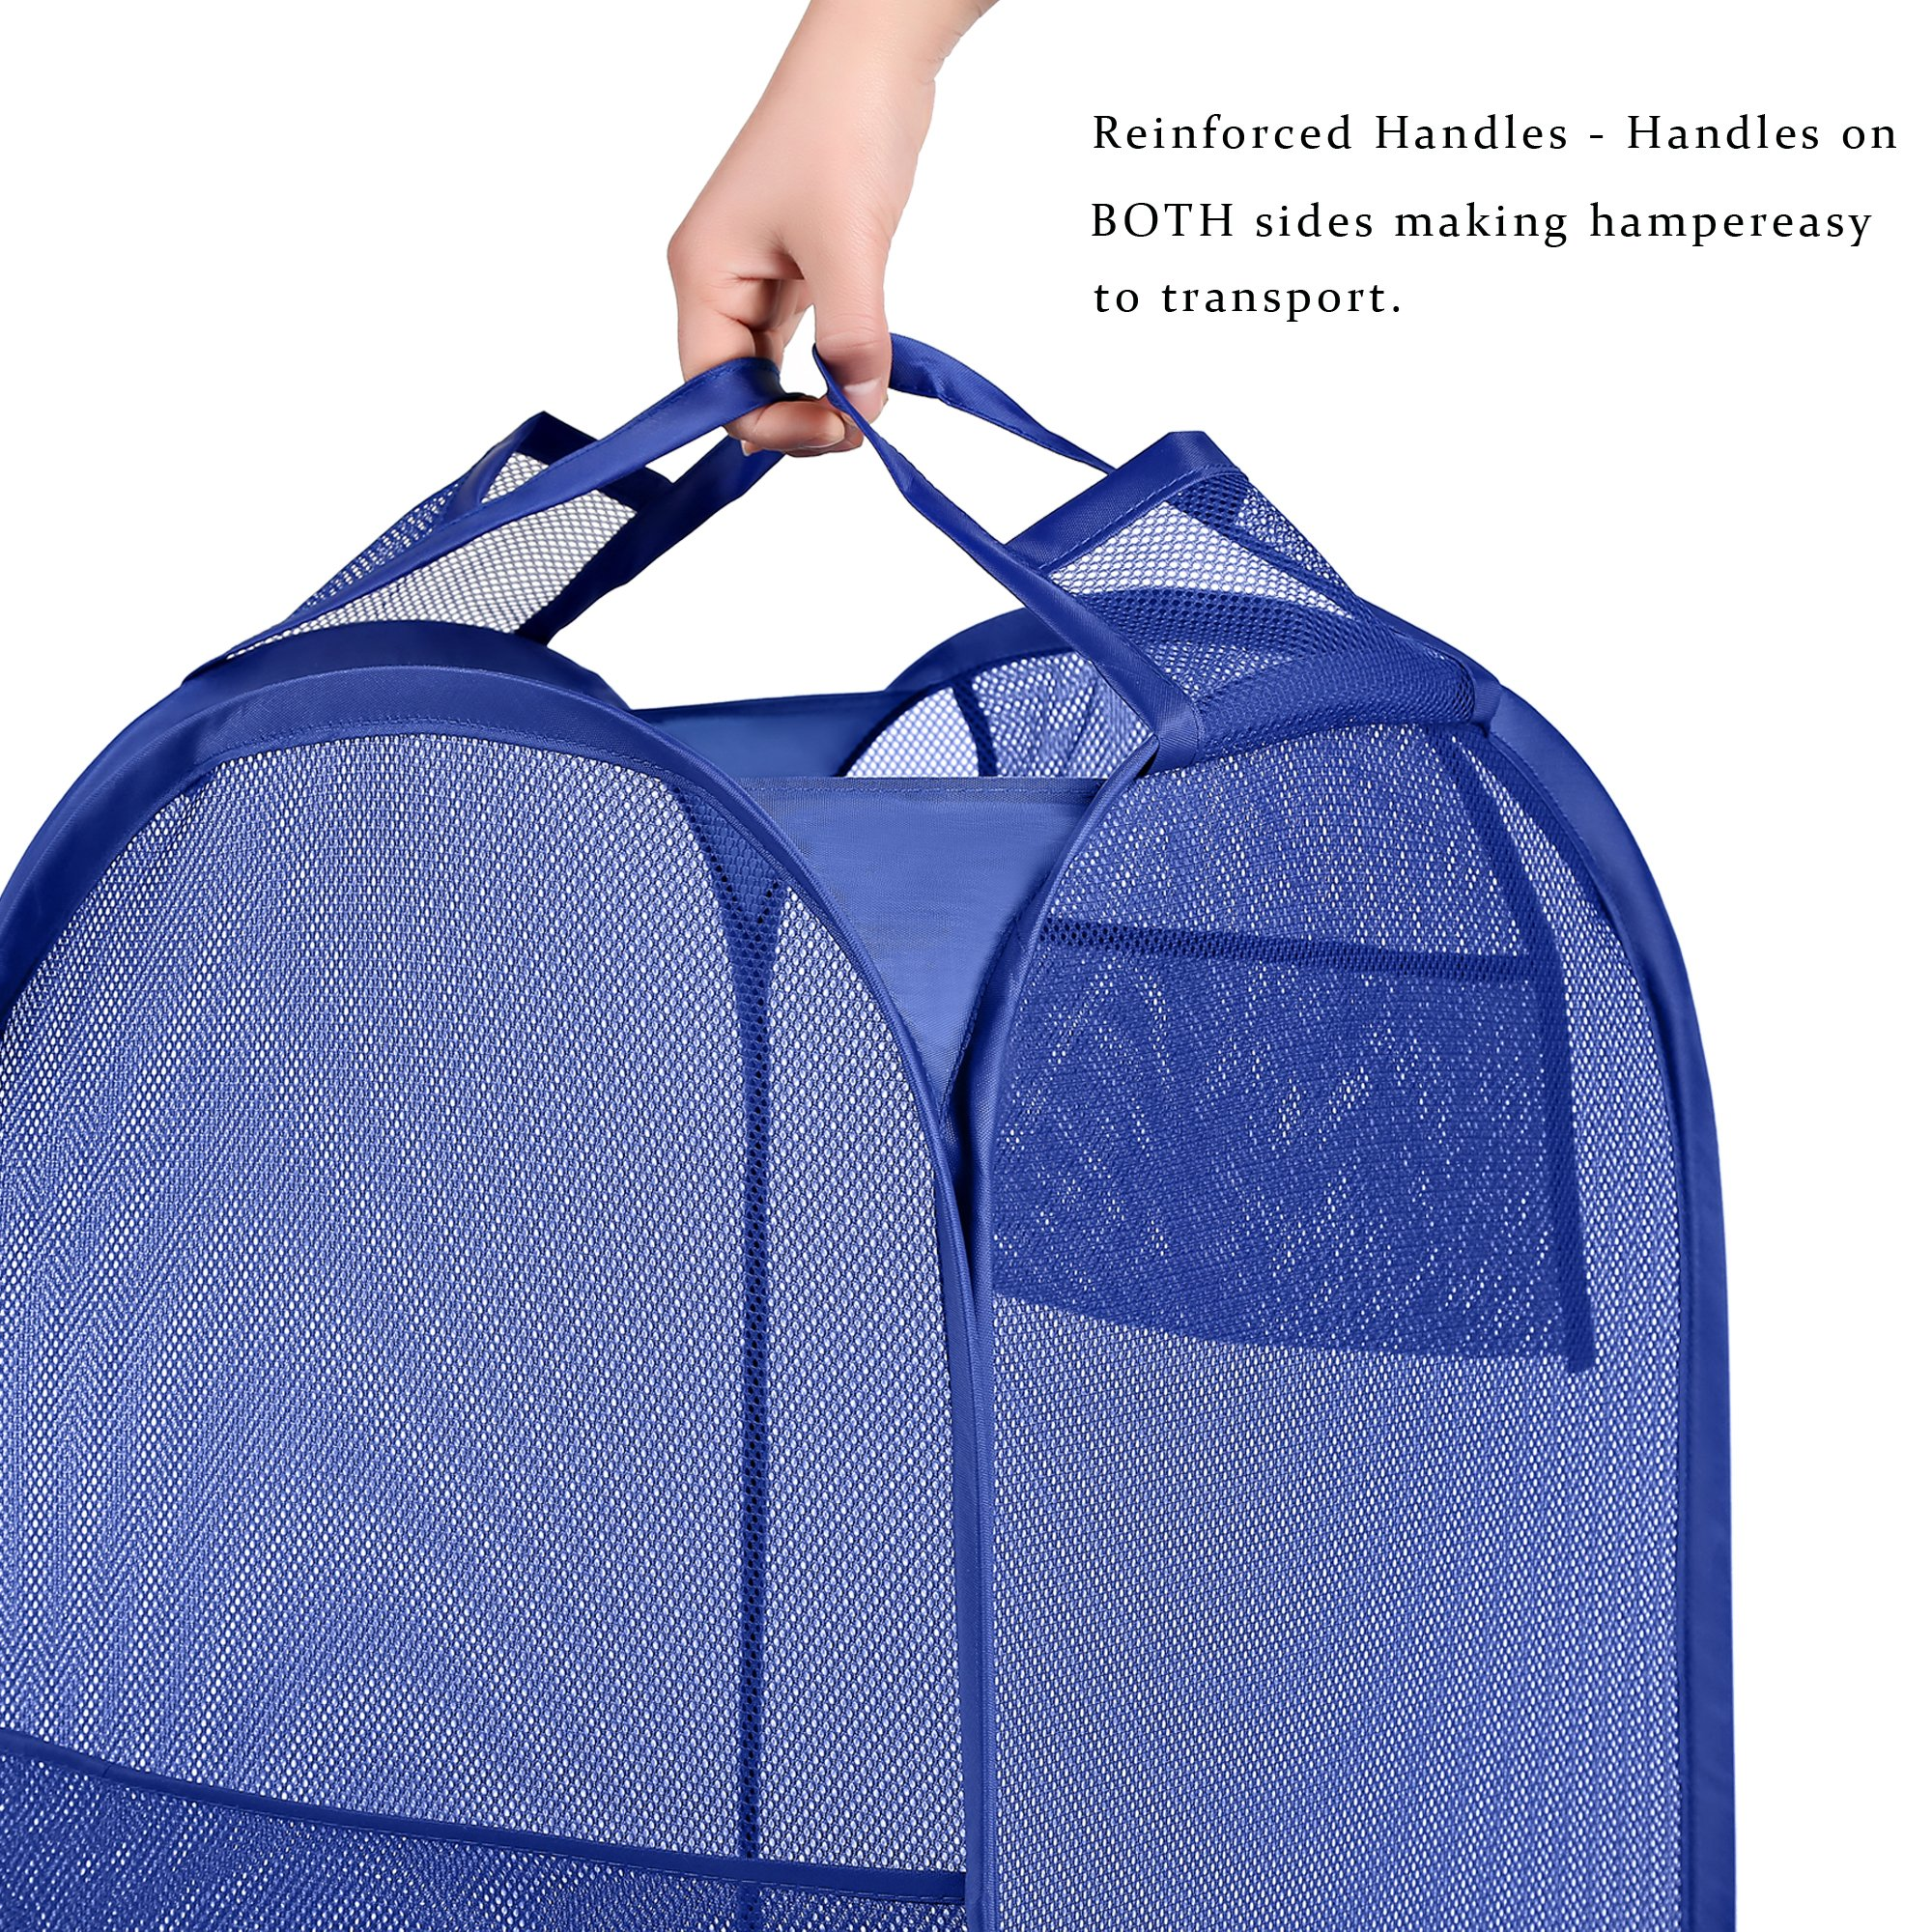 Bagail 2-Pack Pop-up Mesh Laundry Hamper with Reinforced Carry Handles,Foldable Collapsible Laundry Basket with Side Pocket by BAGAIL (Image #5)